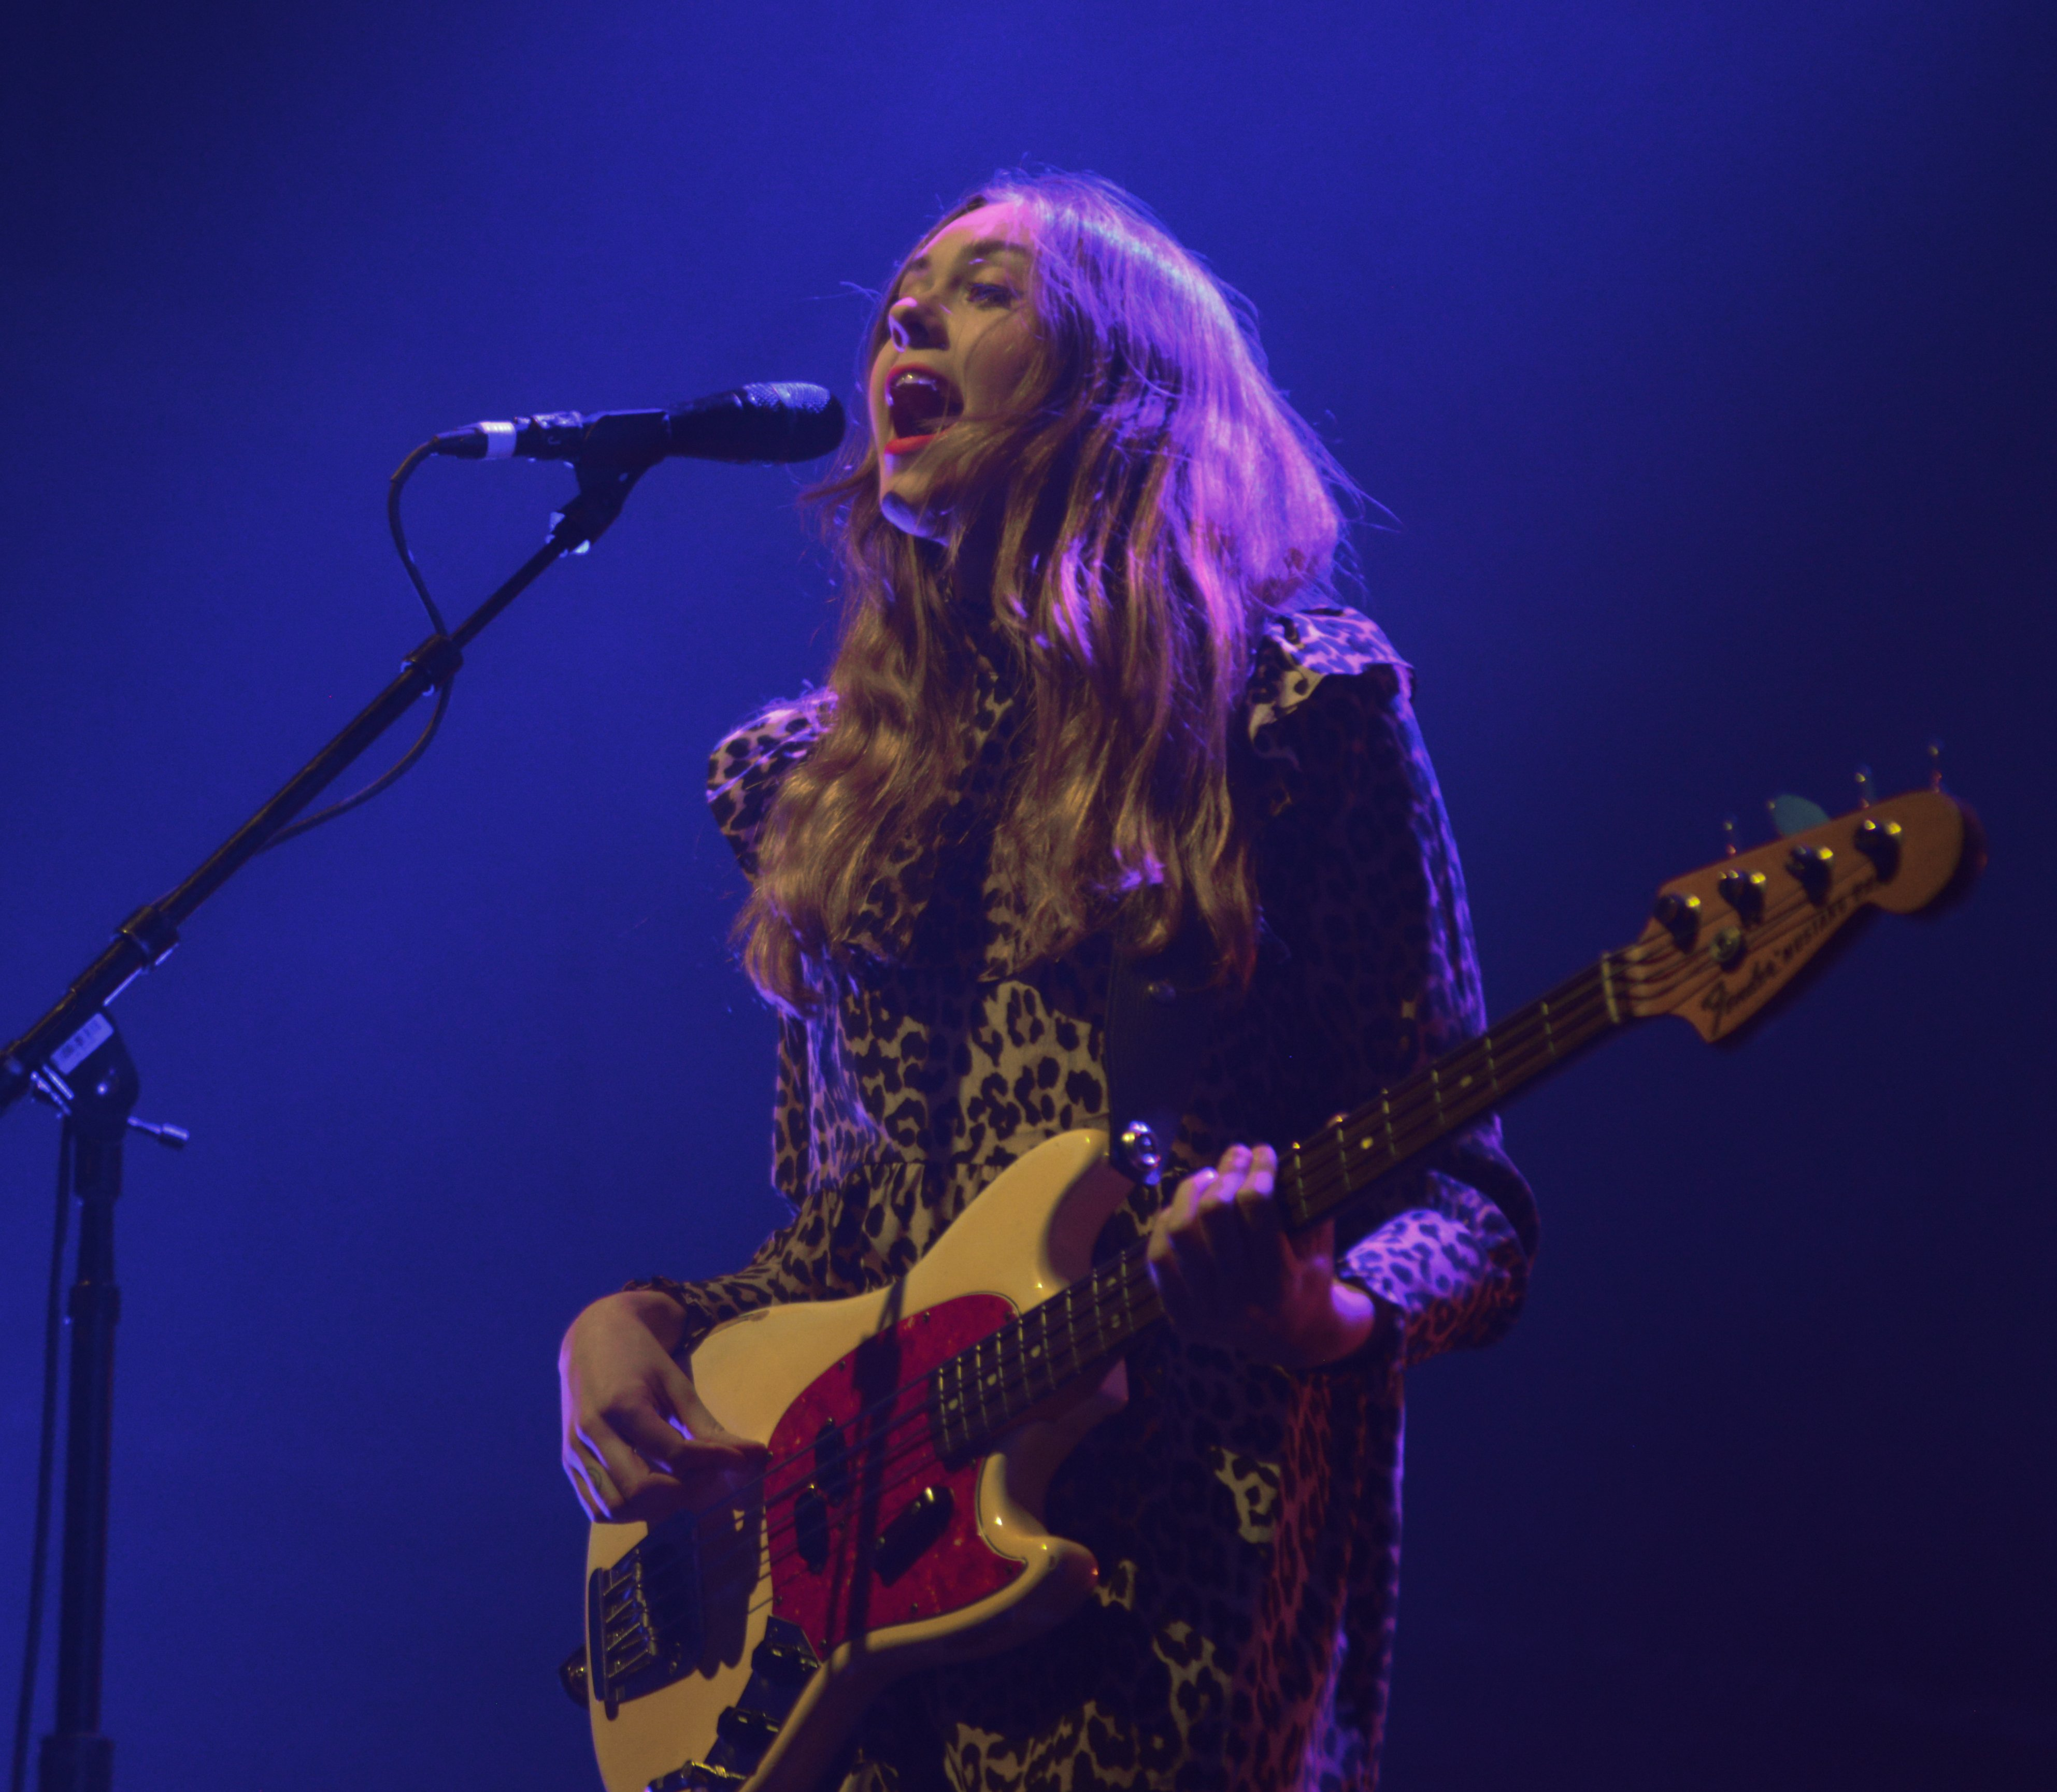 First Aid Kit Brings Soul into the Hearts at House of Blues